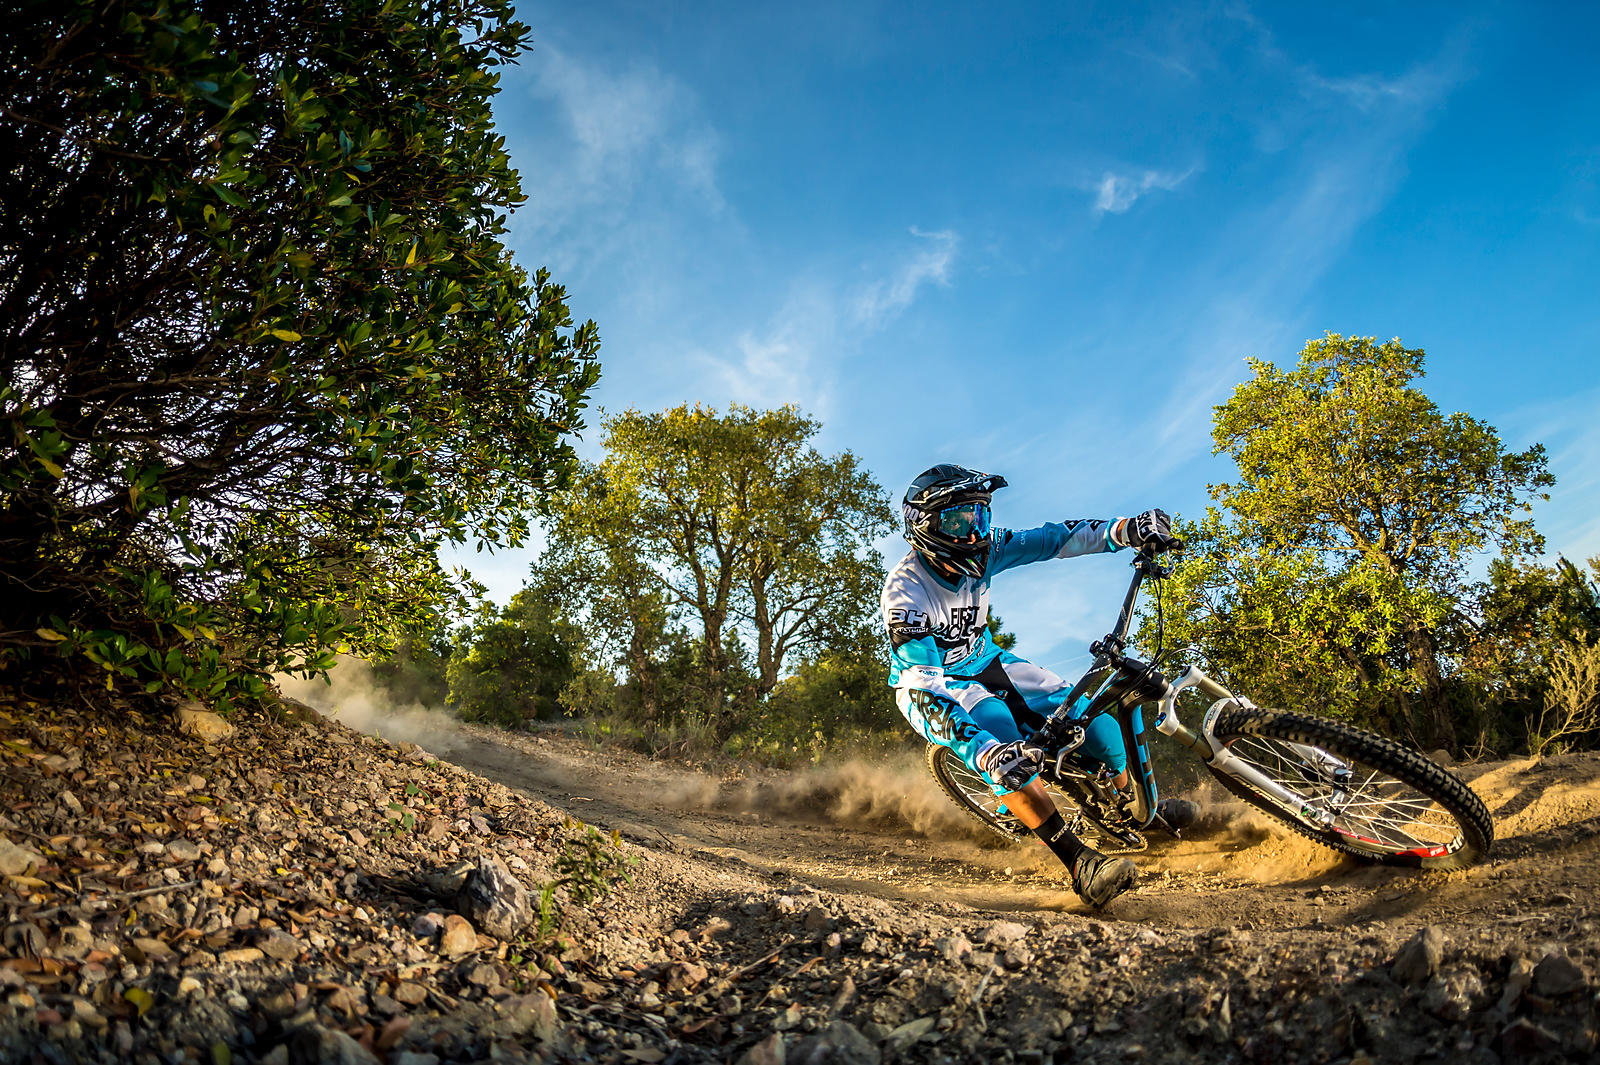 In the dirt with Karim Amour